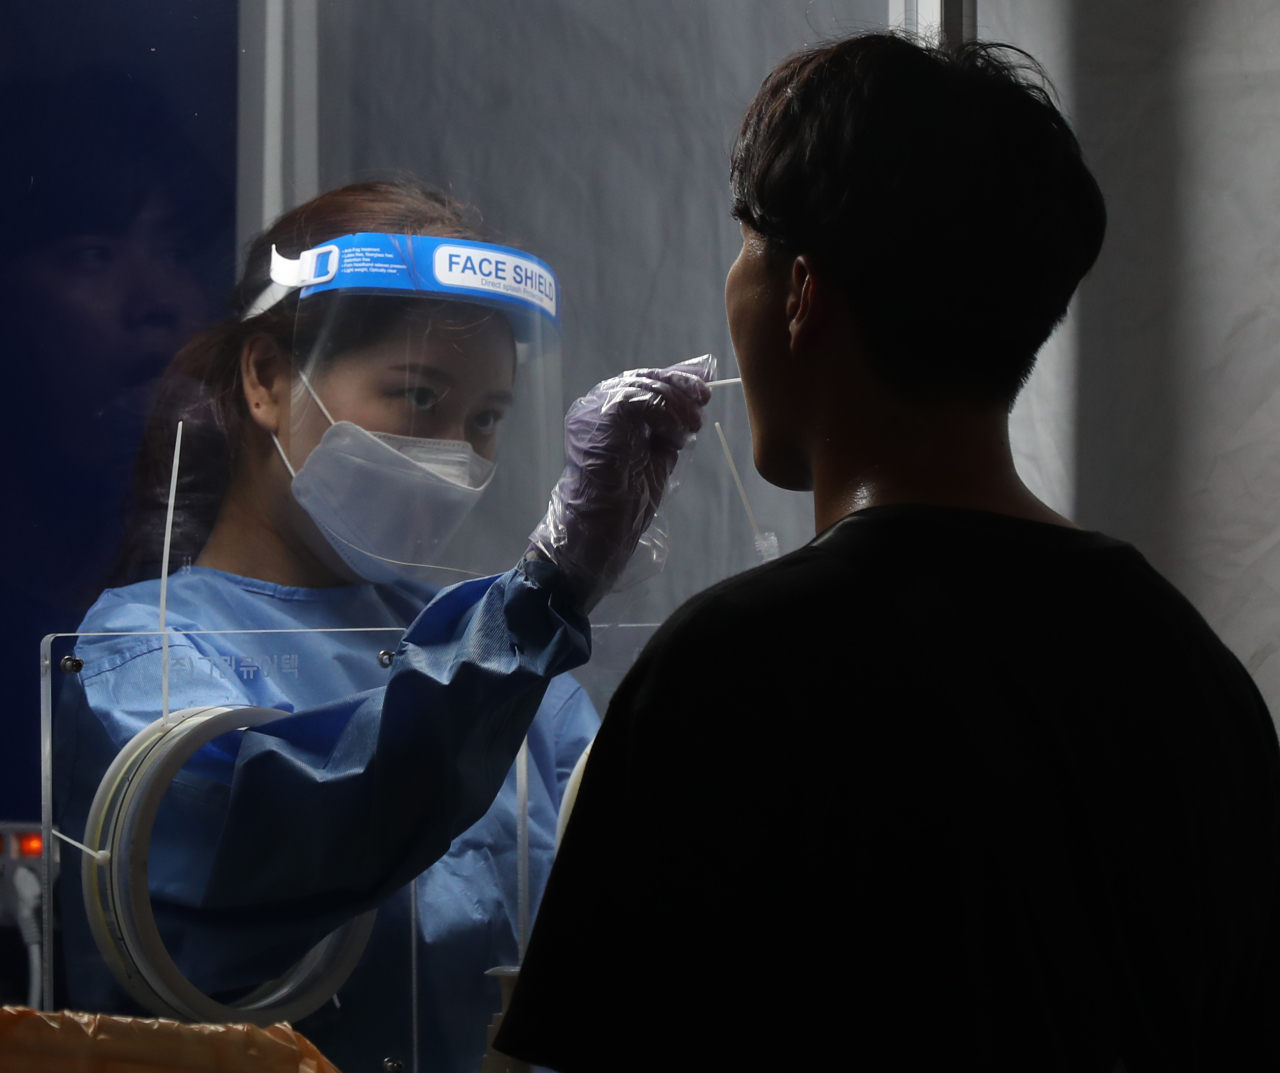 A man goes through a COVID-19 test at a testing site in central Seoul, Thursday. (Yonhap)